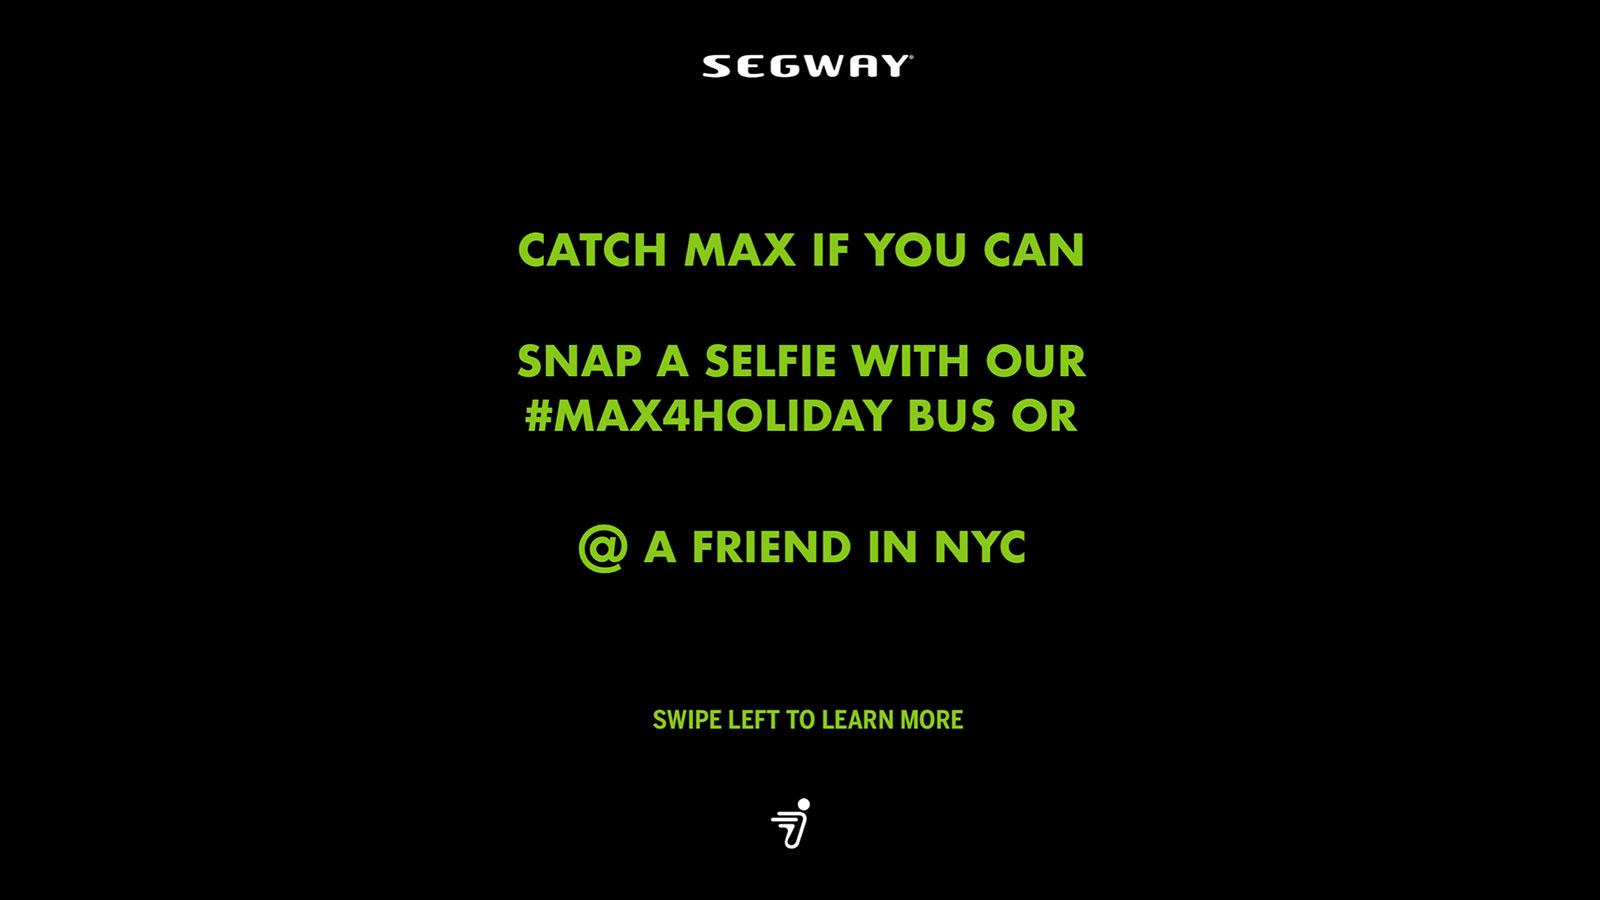 #MAX4Holiday: Catch MAX if you can